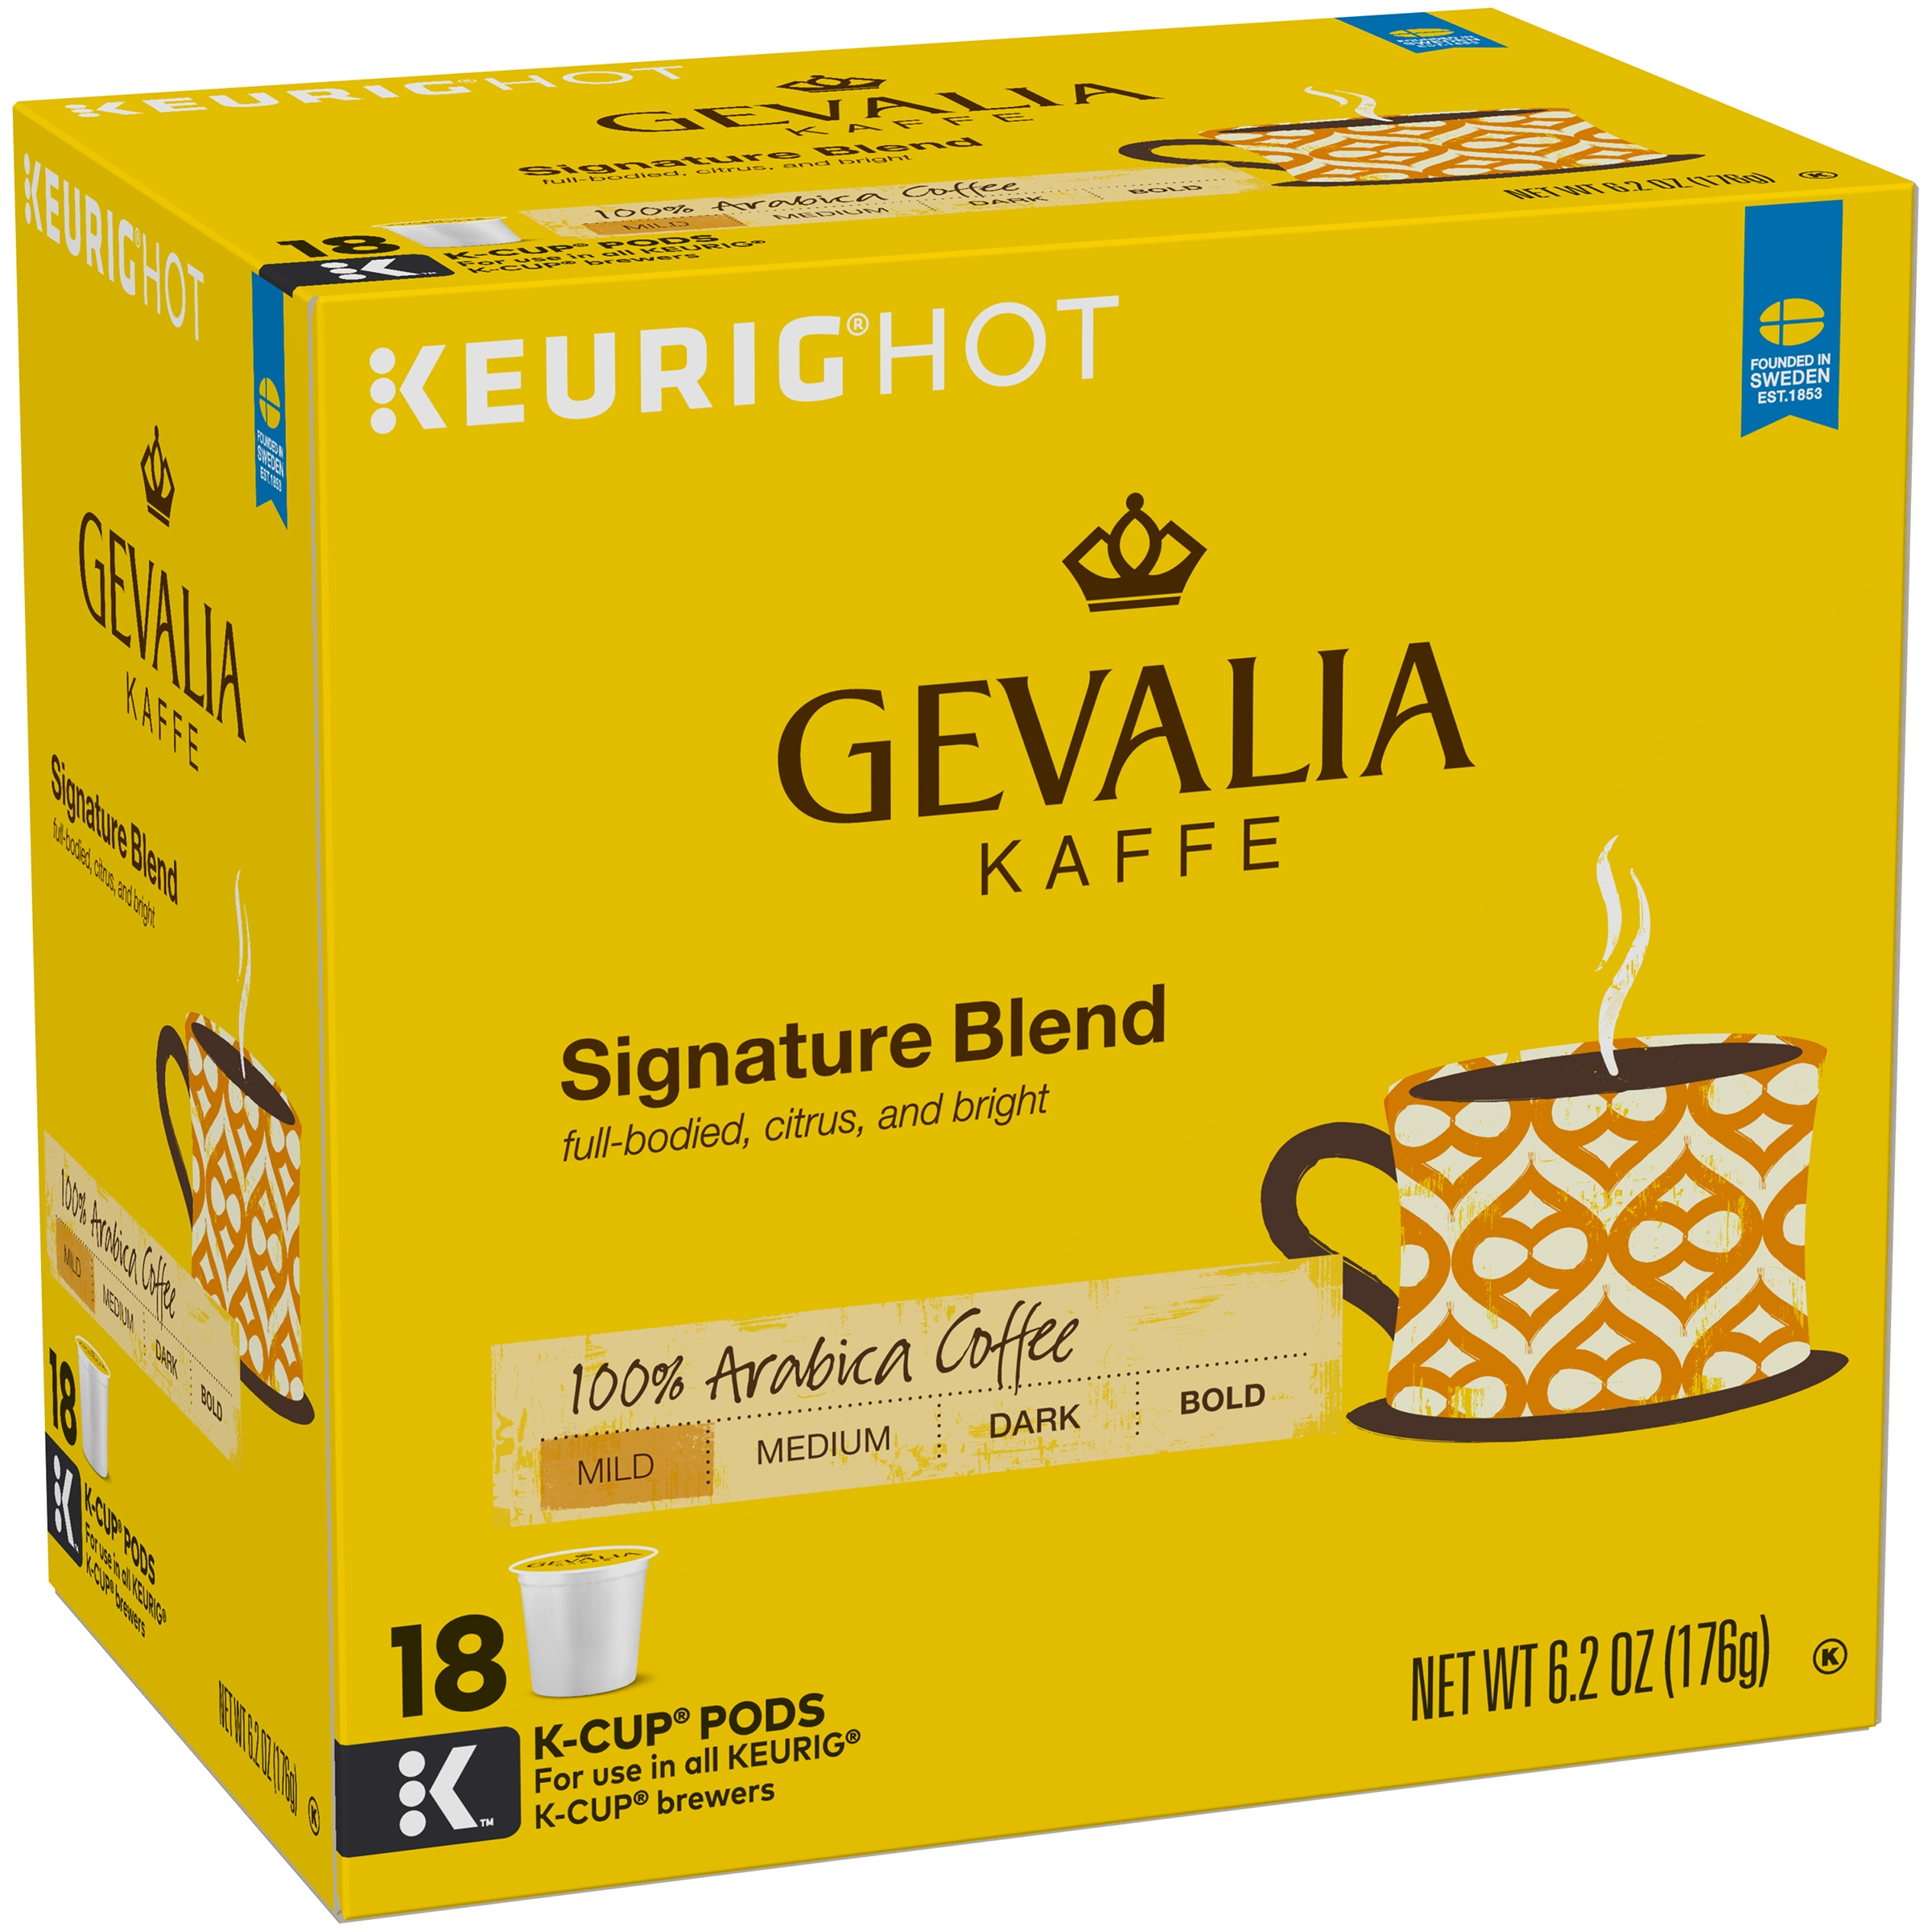 Gevalia Signature Blend Coffee K-Cup® Pods 18 ct Box